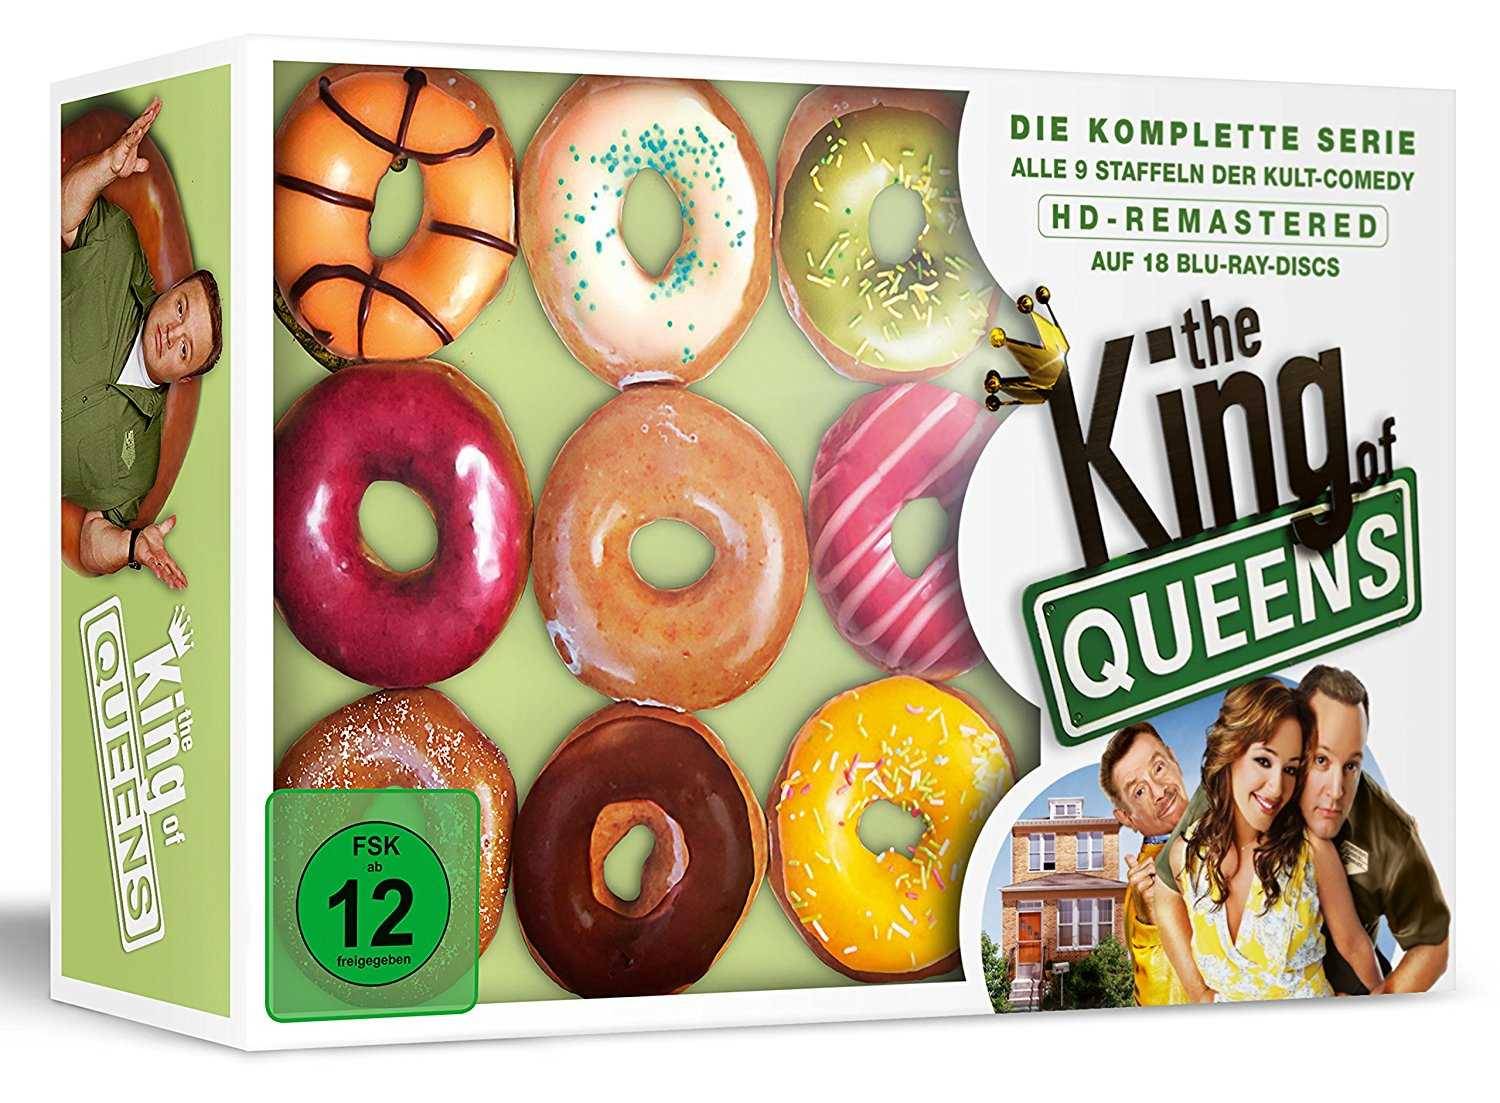 the king of queens hd gesamtbox donut edition exklusiv bei amazon